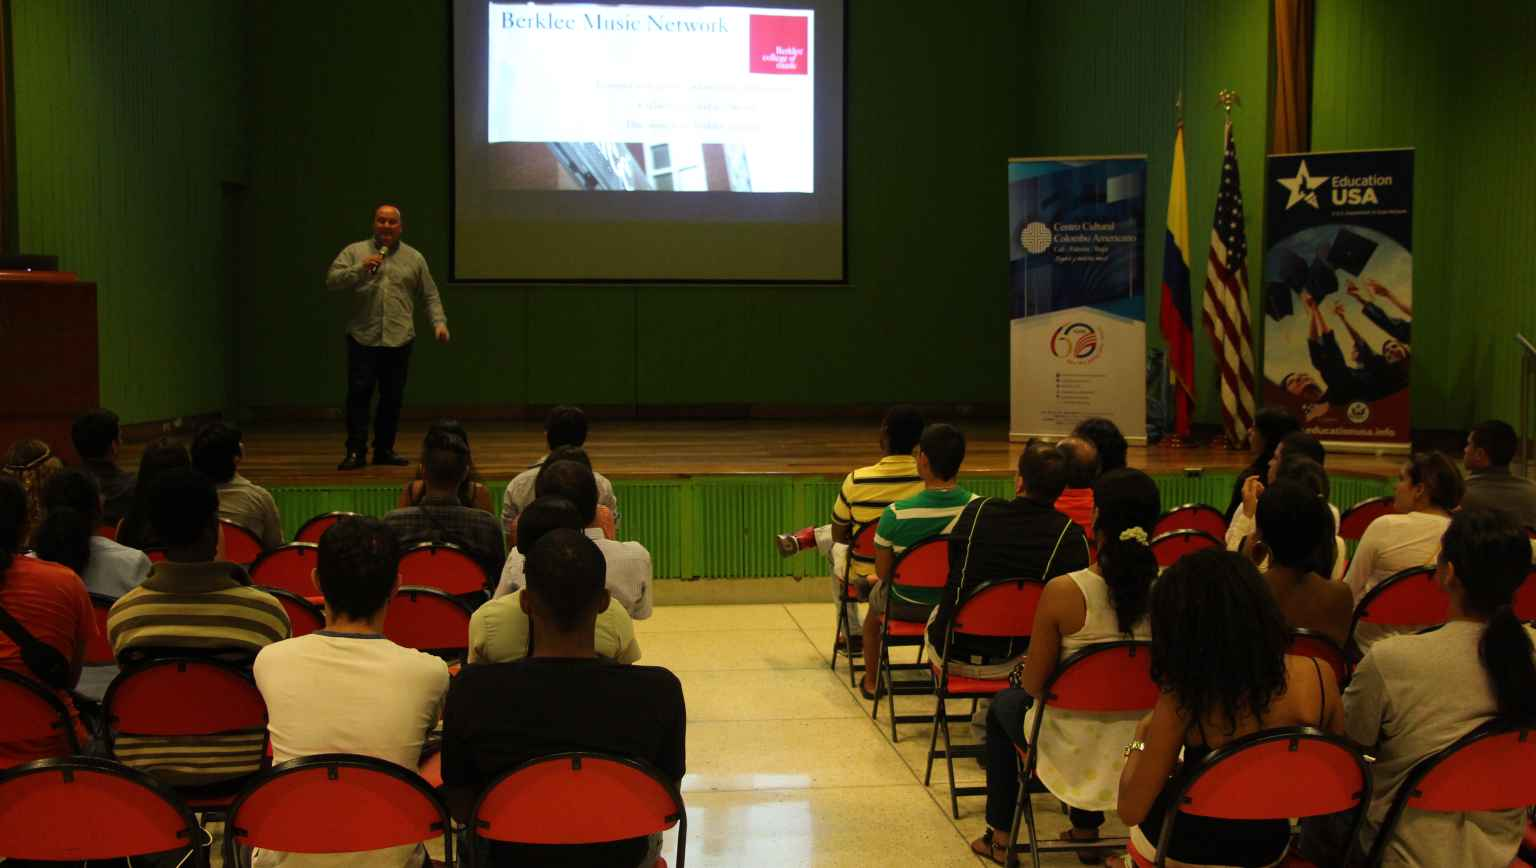 Presentations at EducationUSA Cali for international students interested in studying in the US